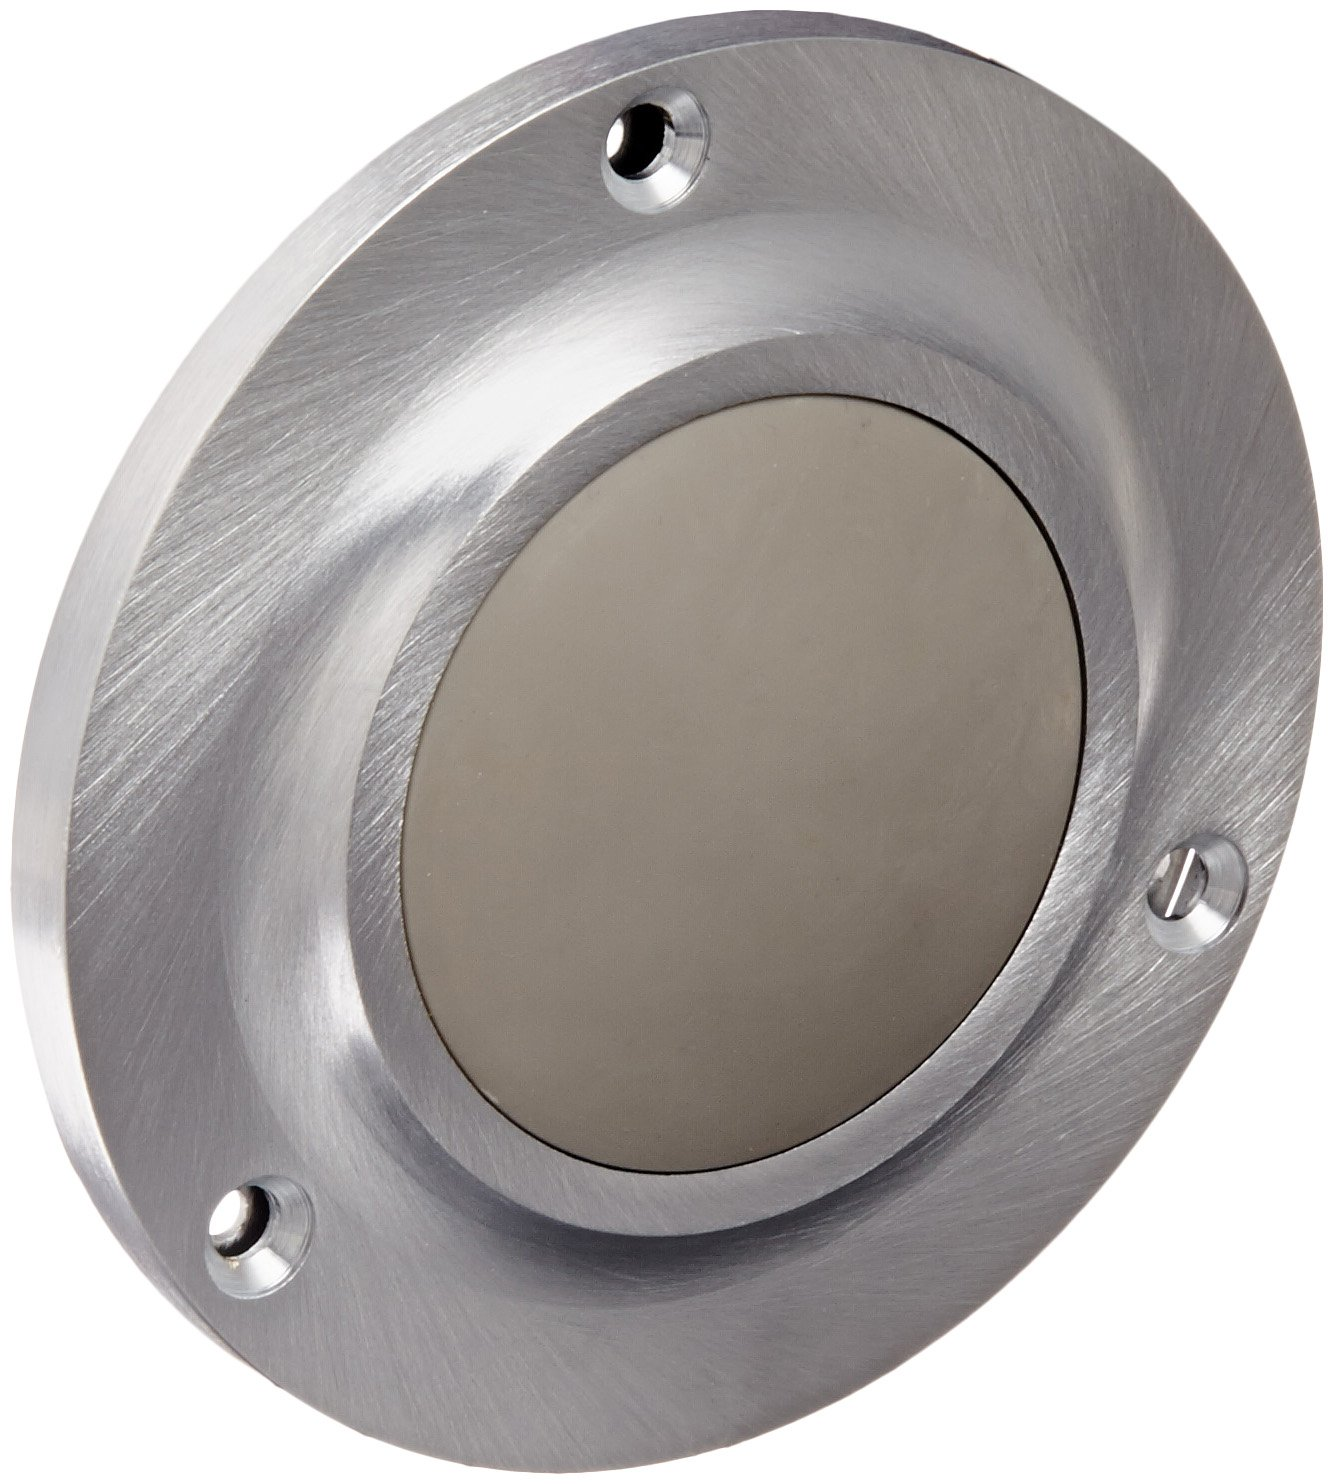 Satin Chrome Plated Finish 8-32 x 2 RH MS Fastener with Toggle Bolt 4 Diameter Rockwood Manufacturing Company 8-32 x 2 RH MS Fastener with Toggle Bolt Rockwood 415.26D Brass Convex Solid Cast Wall Stop 4 Diameter